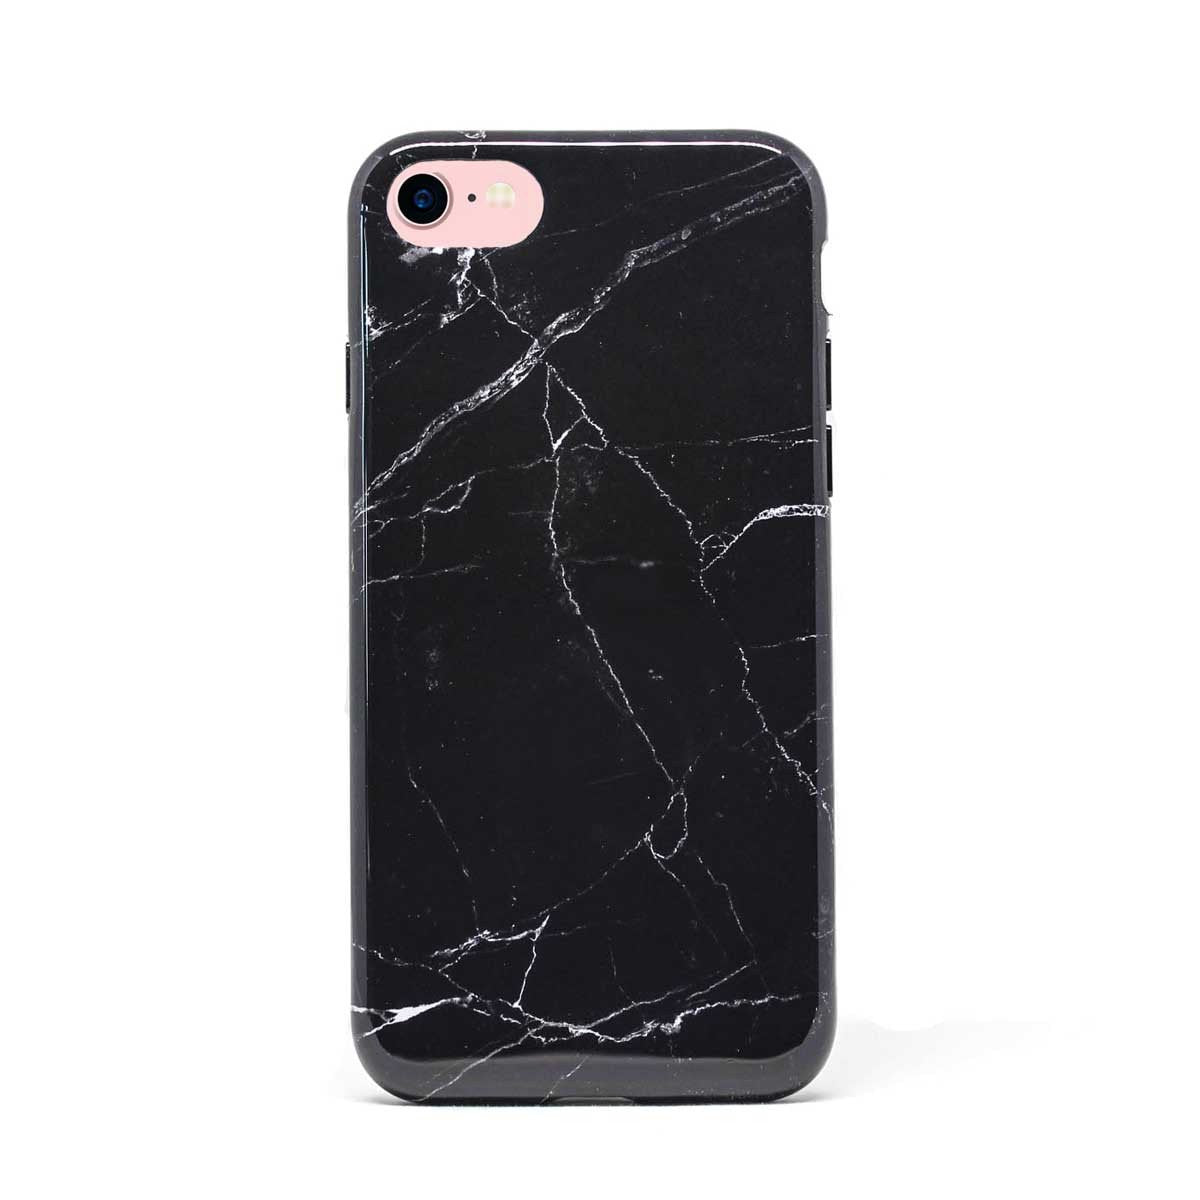 iPhone 6 Plus Glossy Case